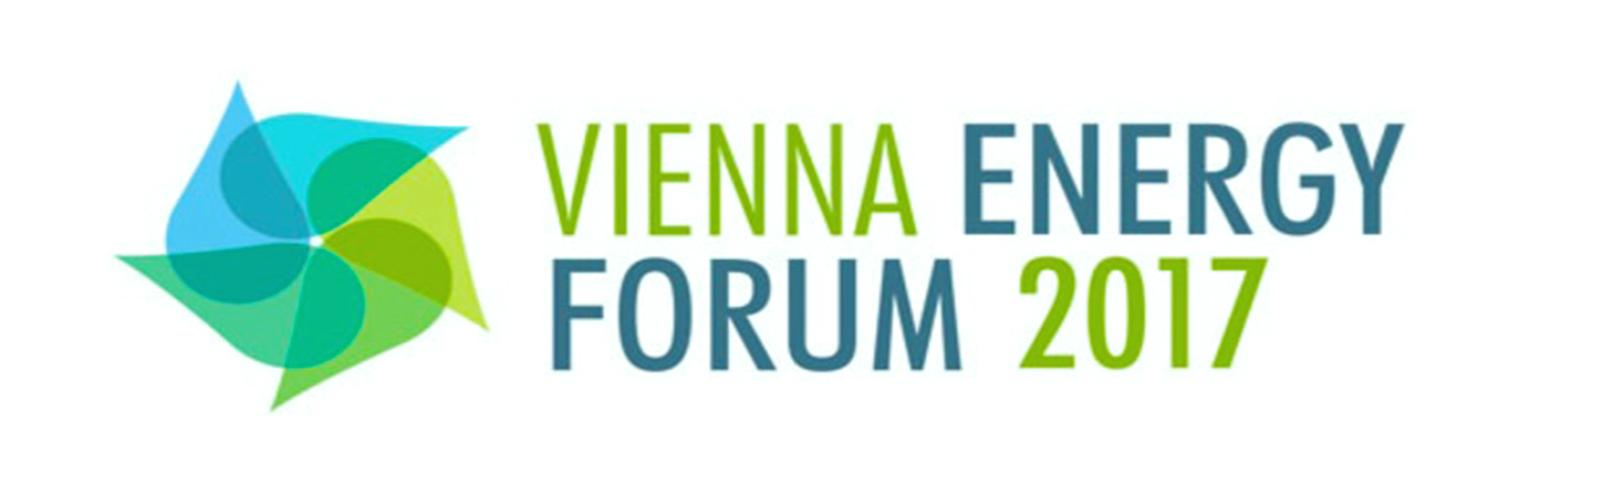 Vienna Energy Forum 2017 Logo